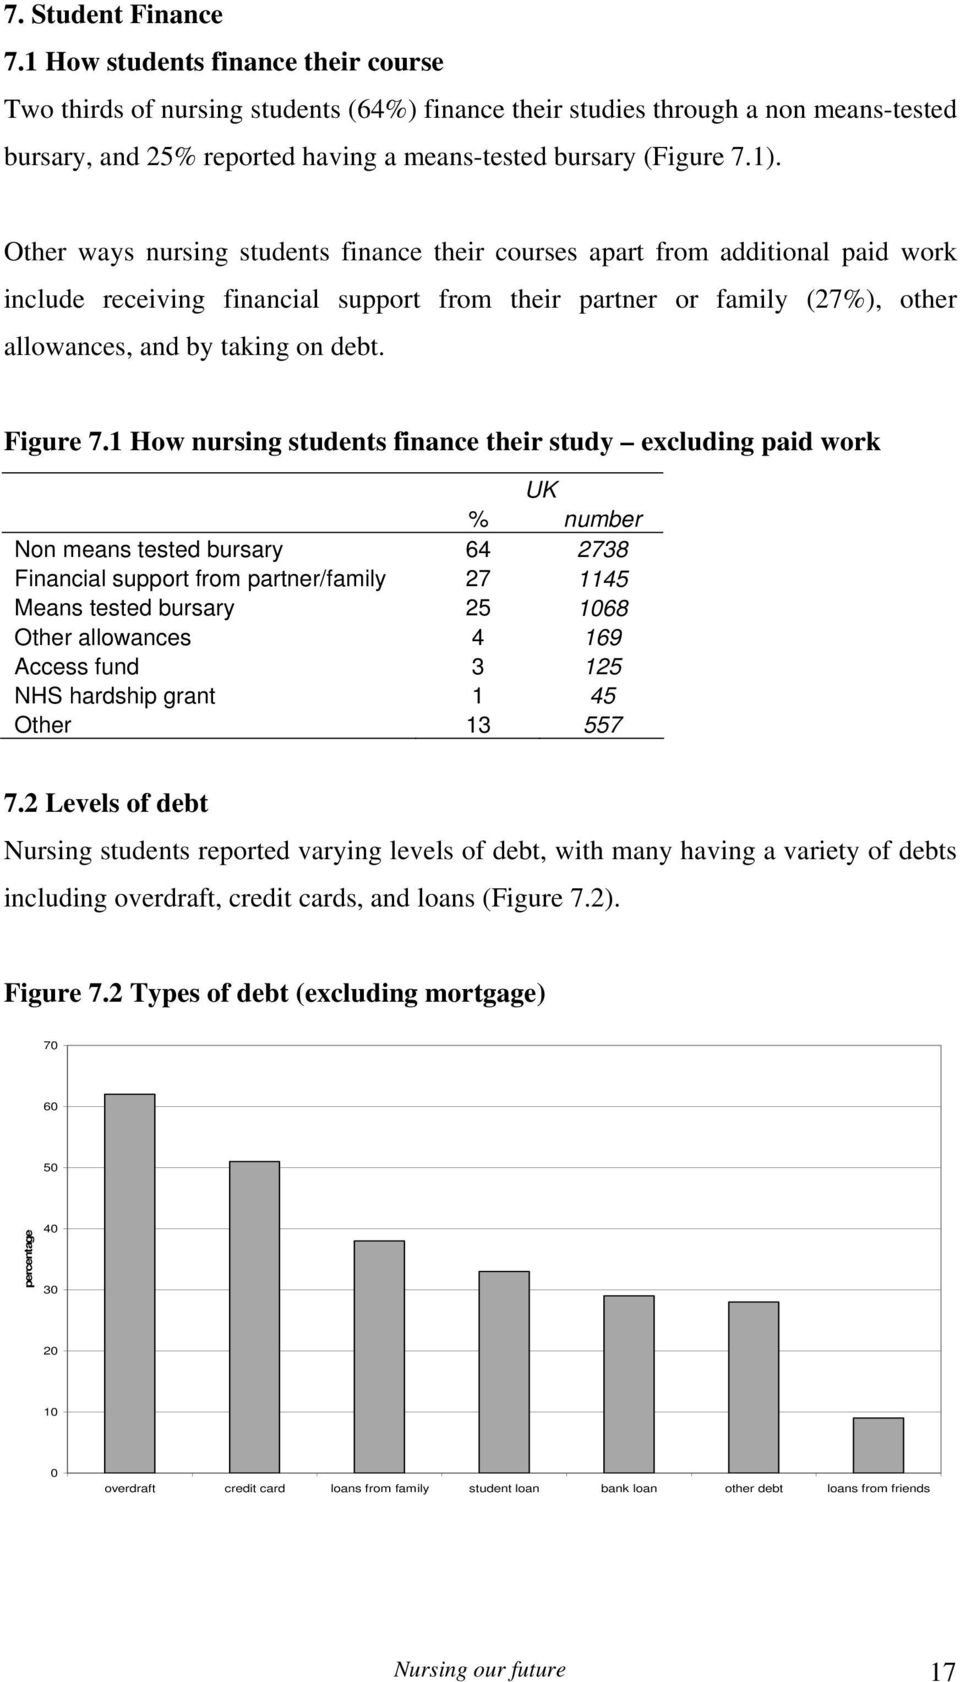 Other ways nursing students finance their courses apart from additional paid work include receiving financial support from their partner or family (27%), other allowances, and by taking on debt.